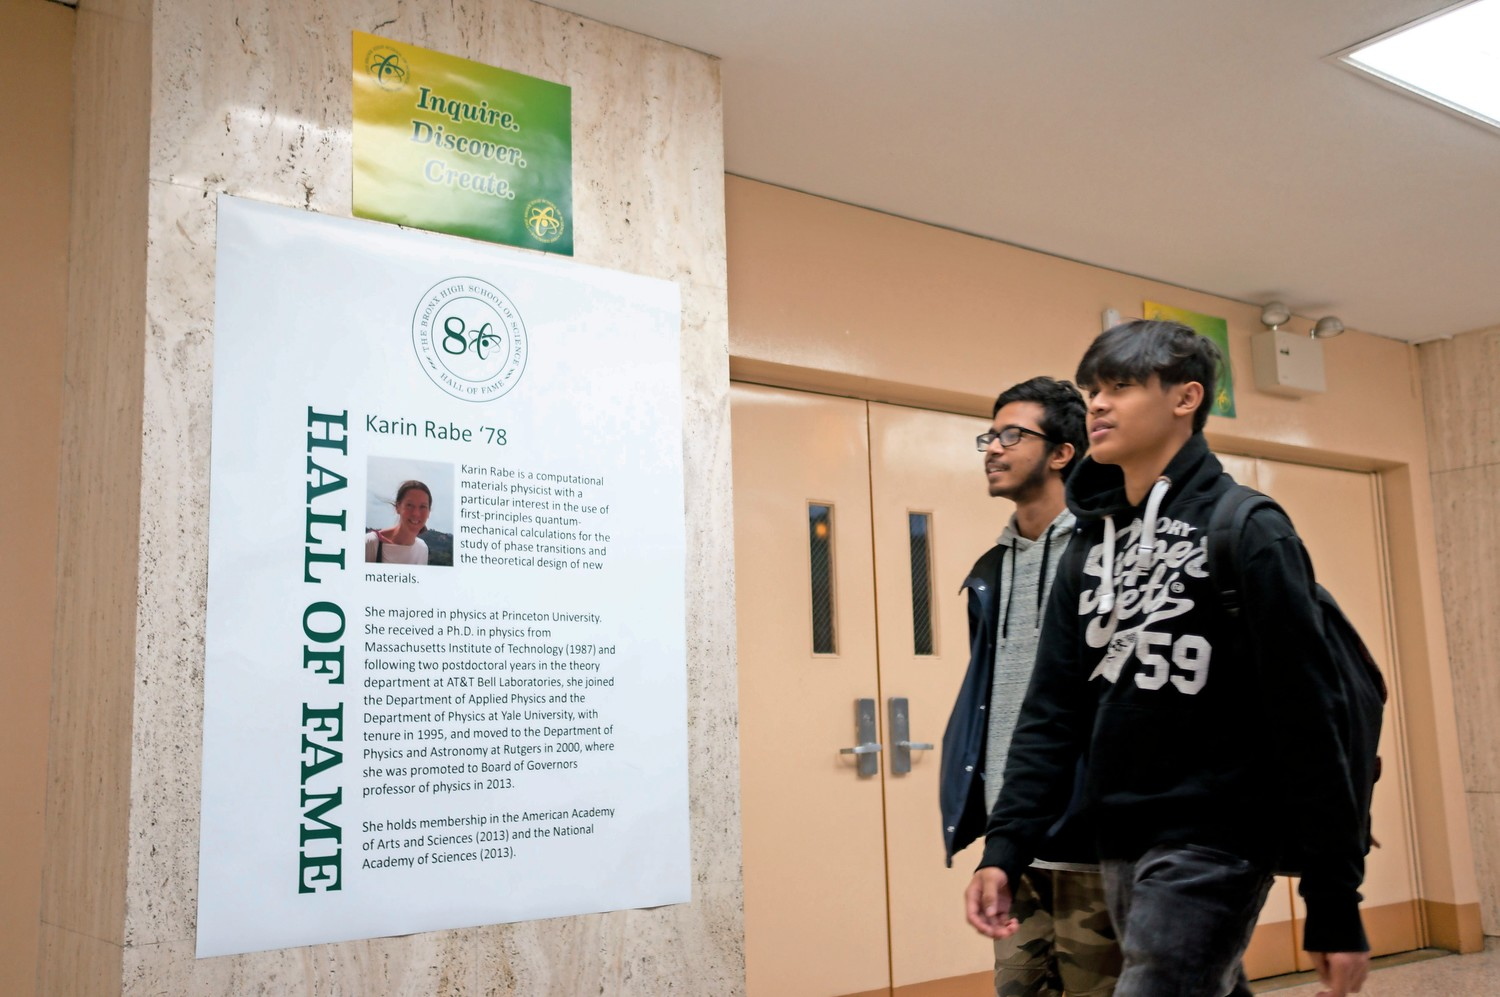 Students at the Bronx High School of Science walk past a hall of fame poster celebrating 1978 alumna Karin Rabe. Bronx Science recently unveiled a hall of fame to celebrate the school's notable alumni.